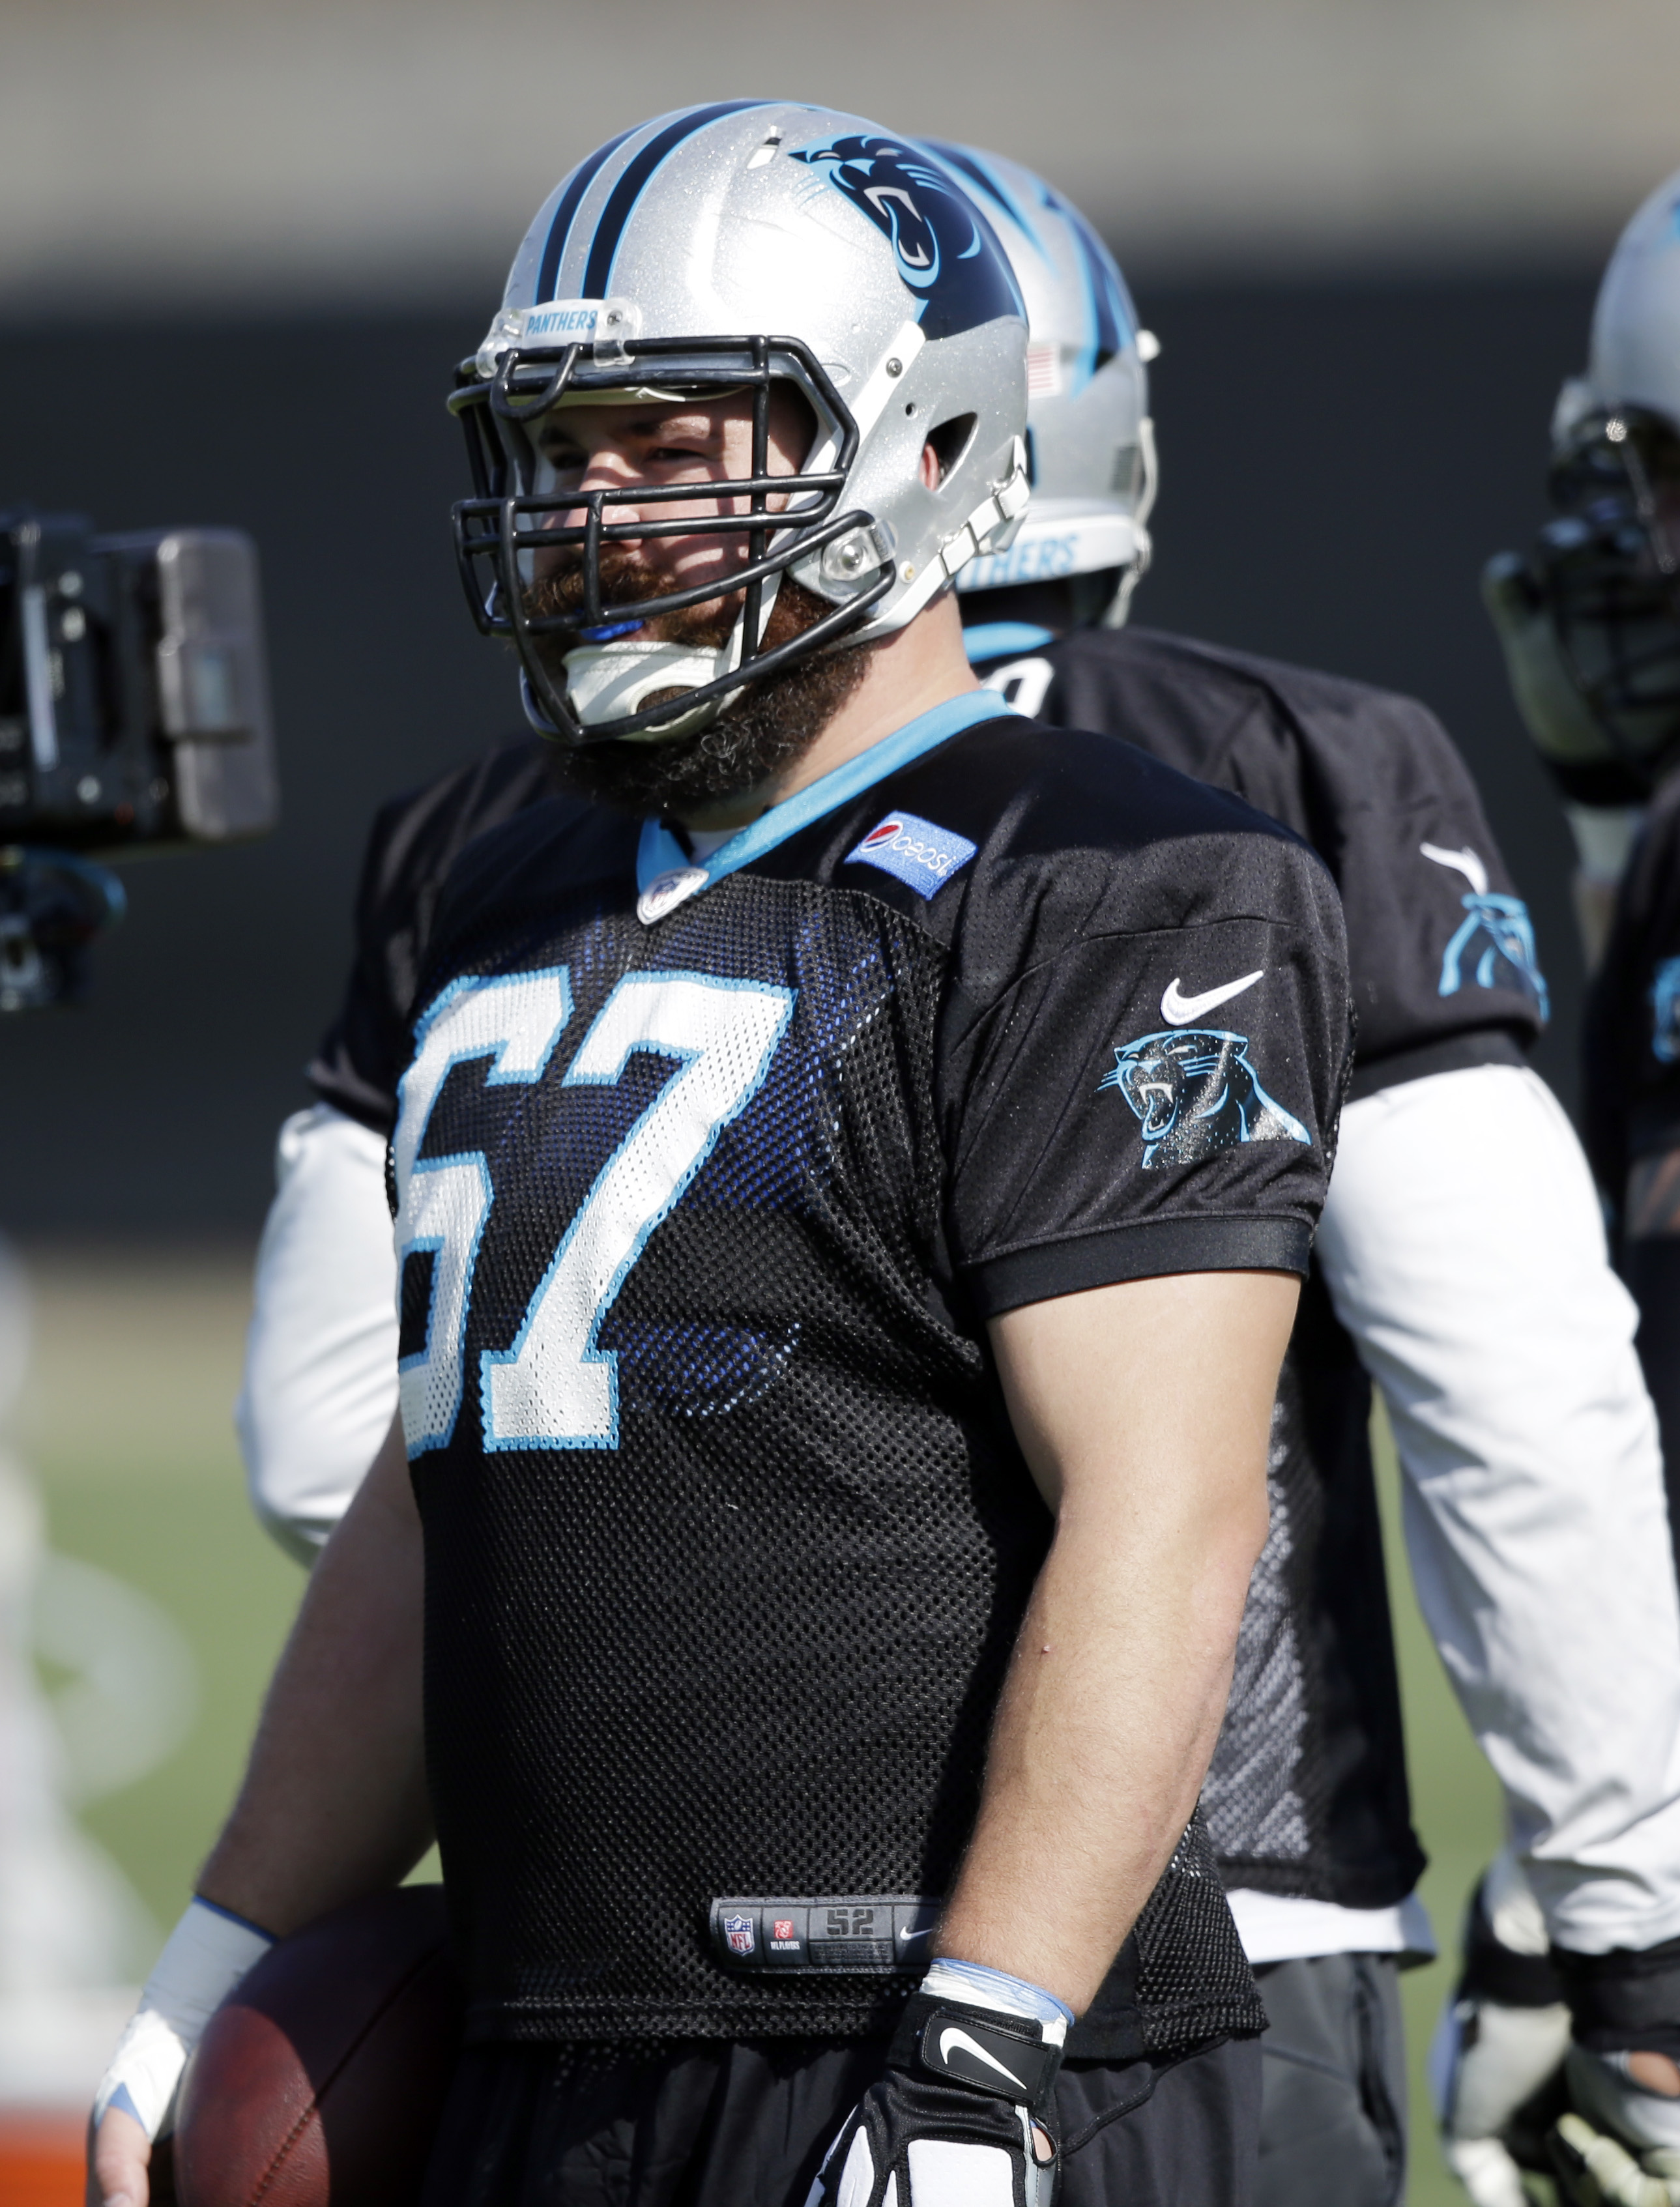 Carolina Panthers center Ryan Kalil (67) waits for a drill during practice in preparation for the Super Bowl 50 football game Friday Feb. 5, 2016 in San Jose, Calif. (AP Photo/Marcio Jose Sanchez)